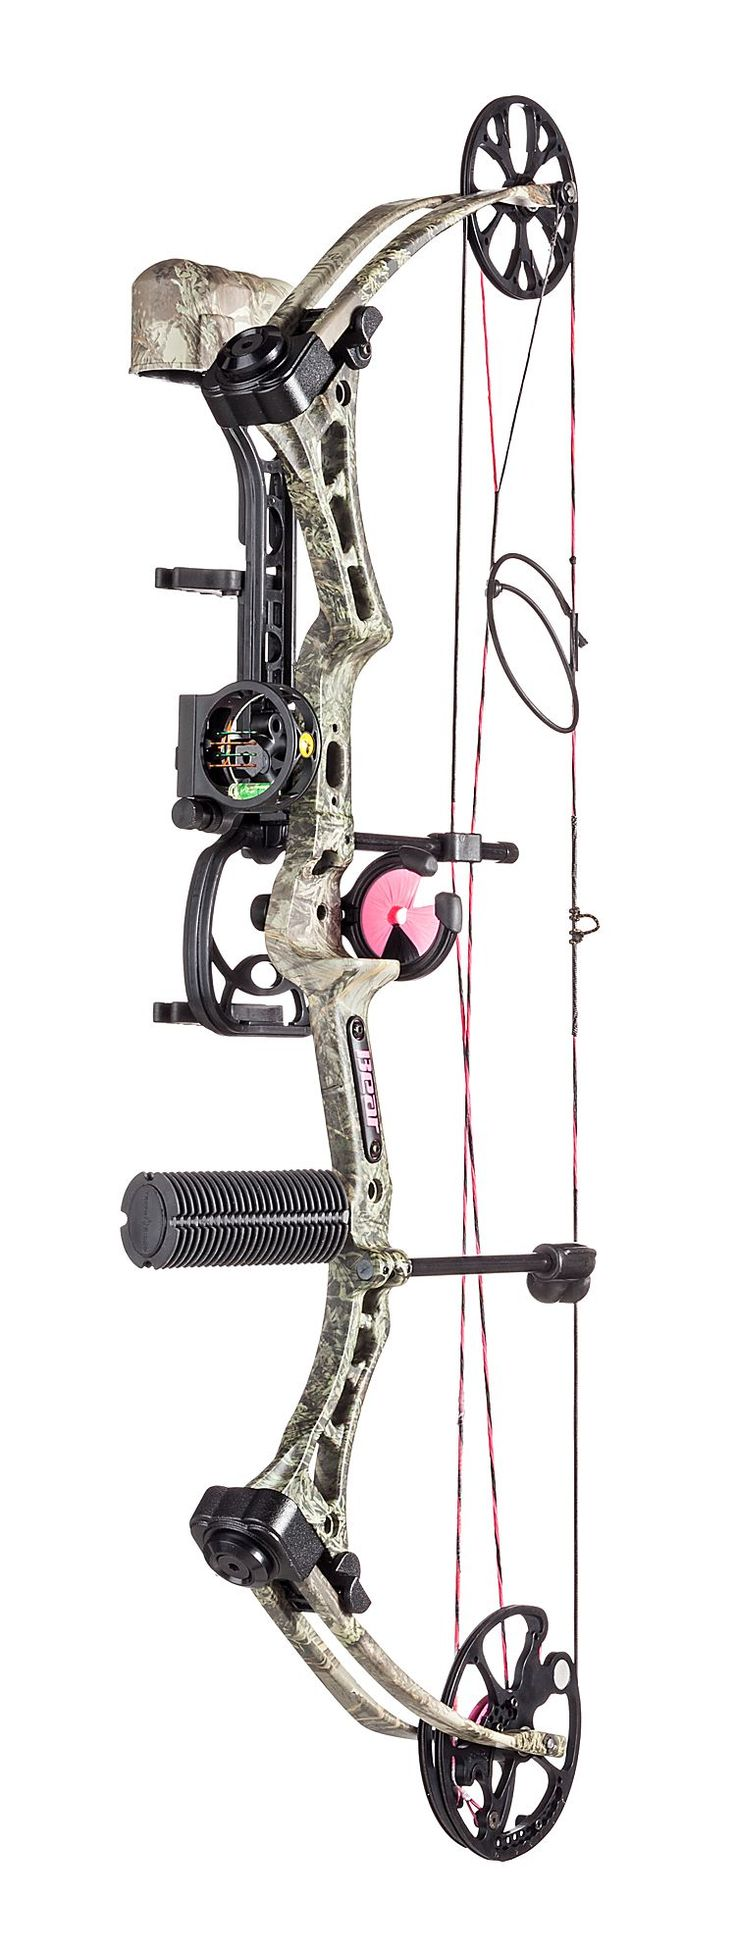 Bear Archery® Finesse RTH Compound Bow Package | Bass Pro Shops #bowhunting